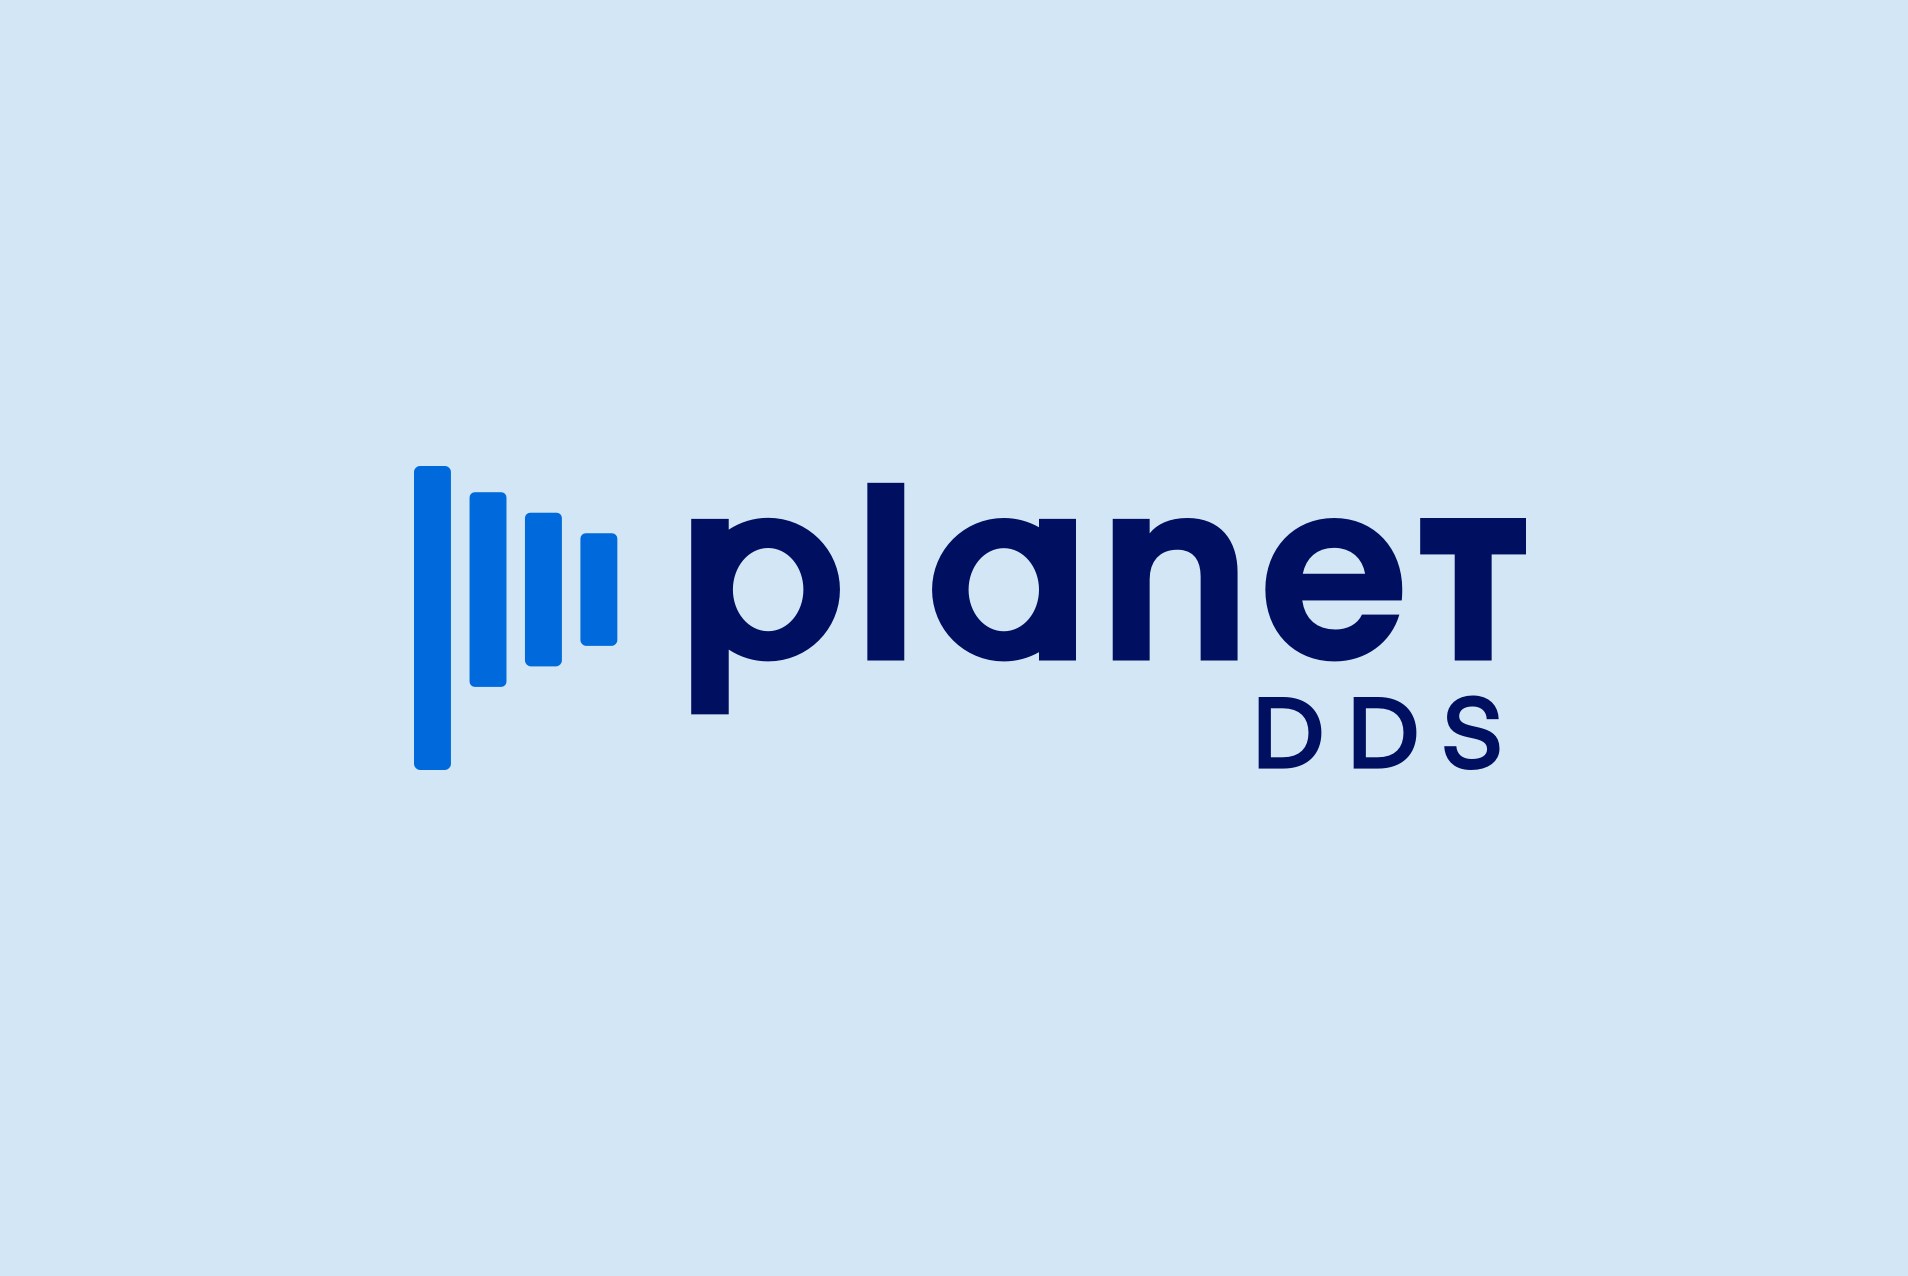 plannet dds logo with background